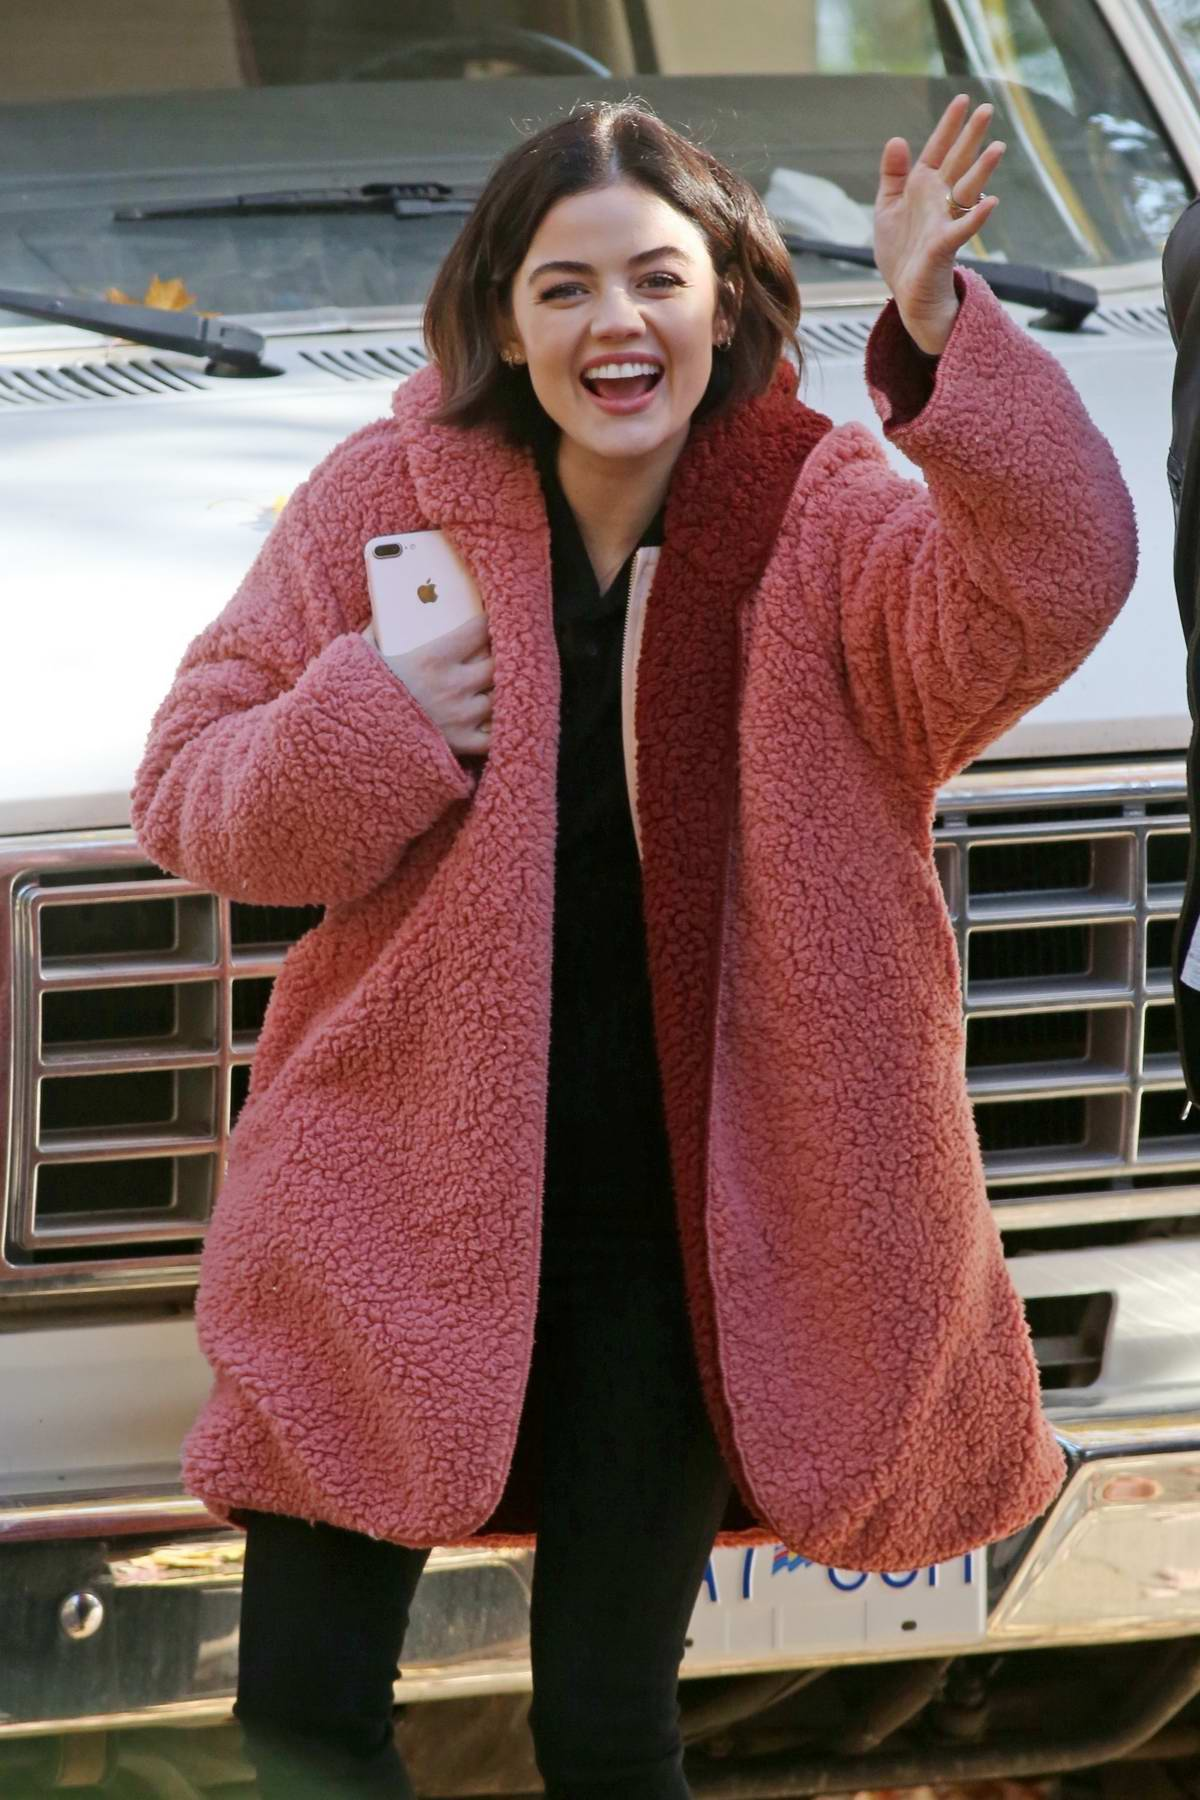 Lucy Hale filming a scene on set of 'Life Sentence' in Vancouver, Canada